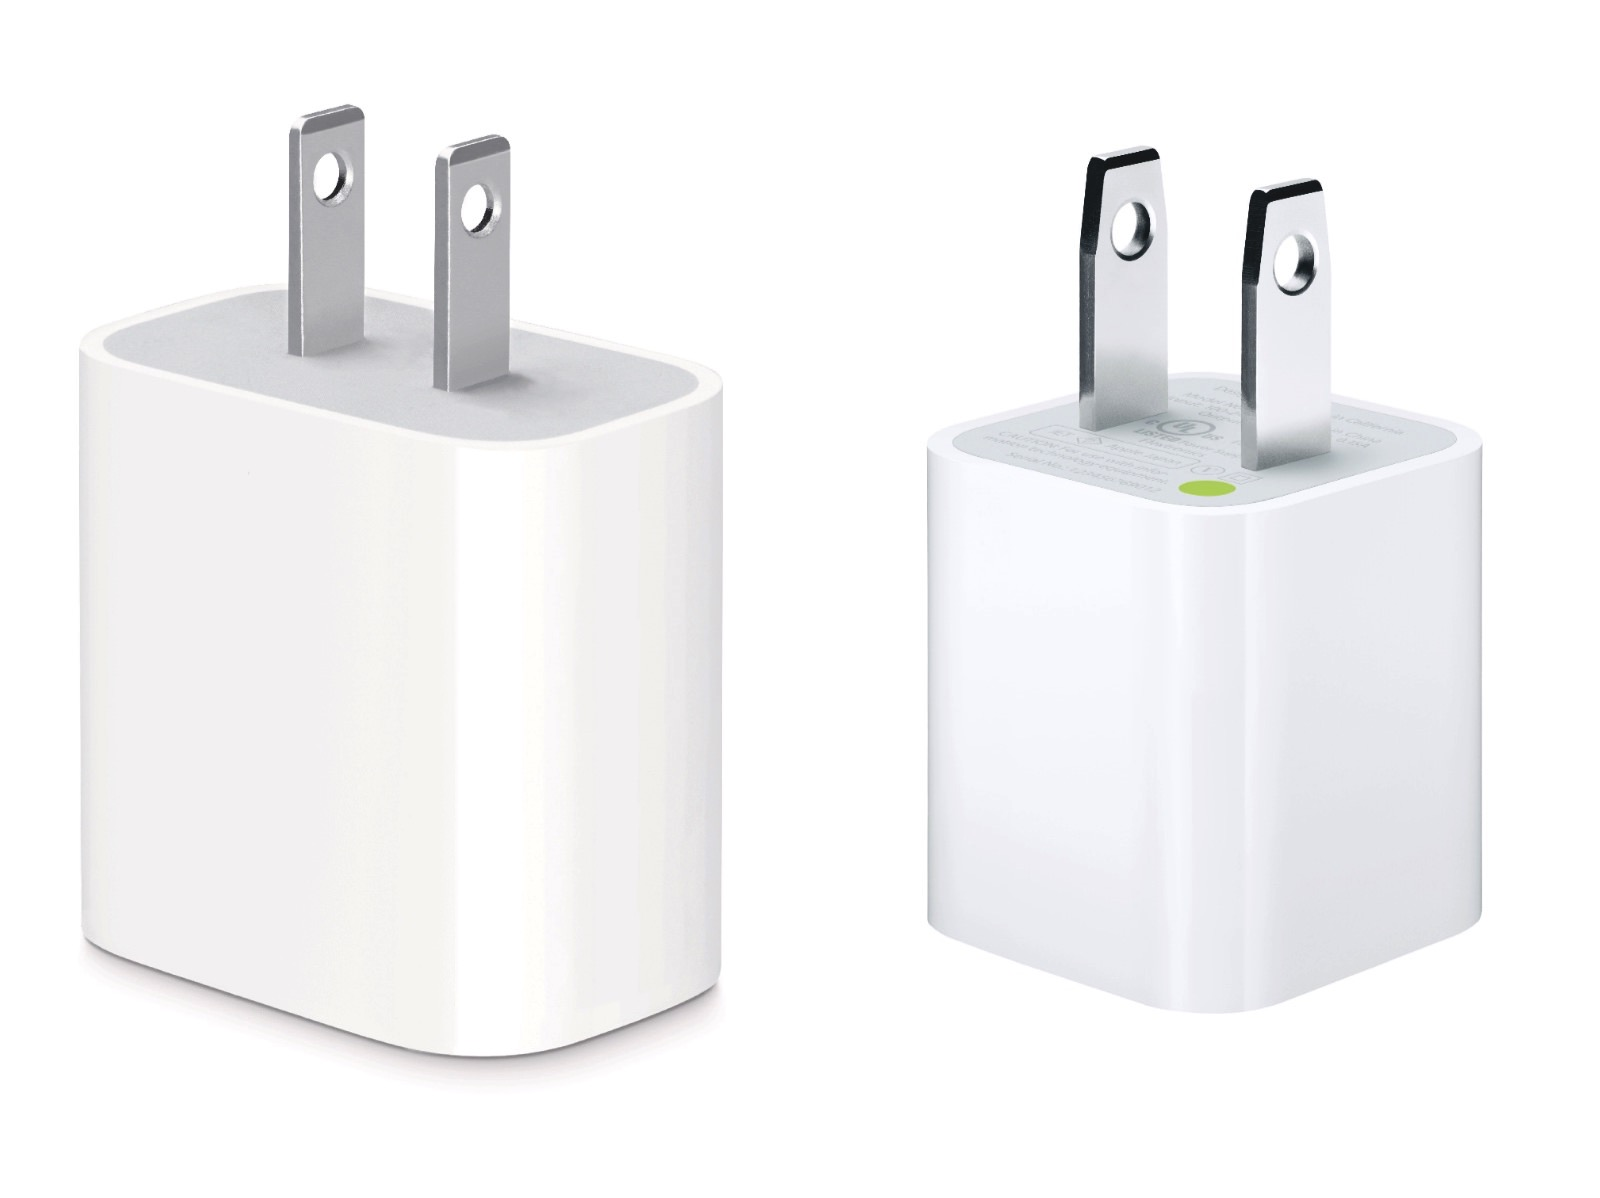 Seven-Eleven-Apple-Accessories-for-sale-2.jpg